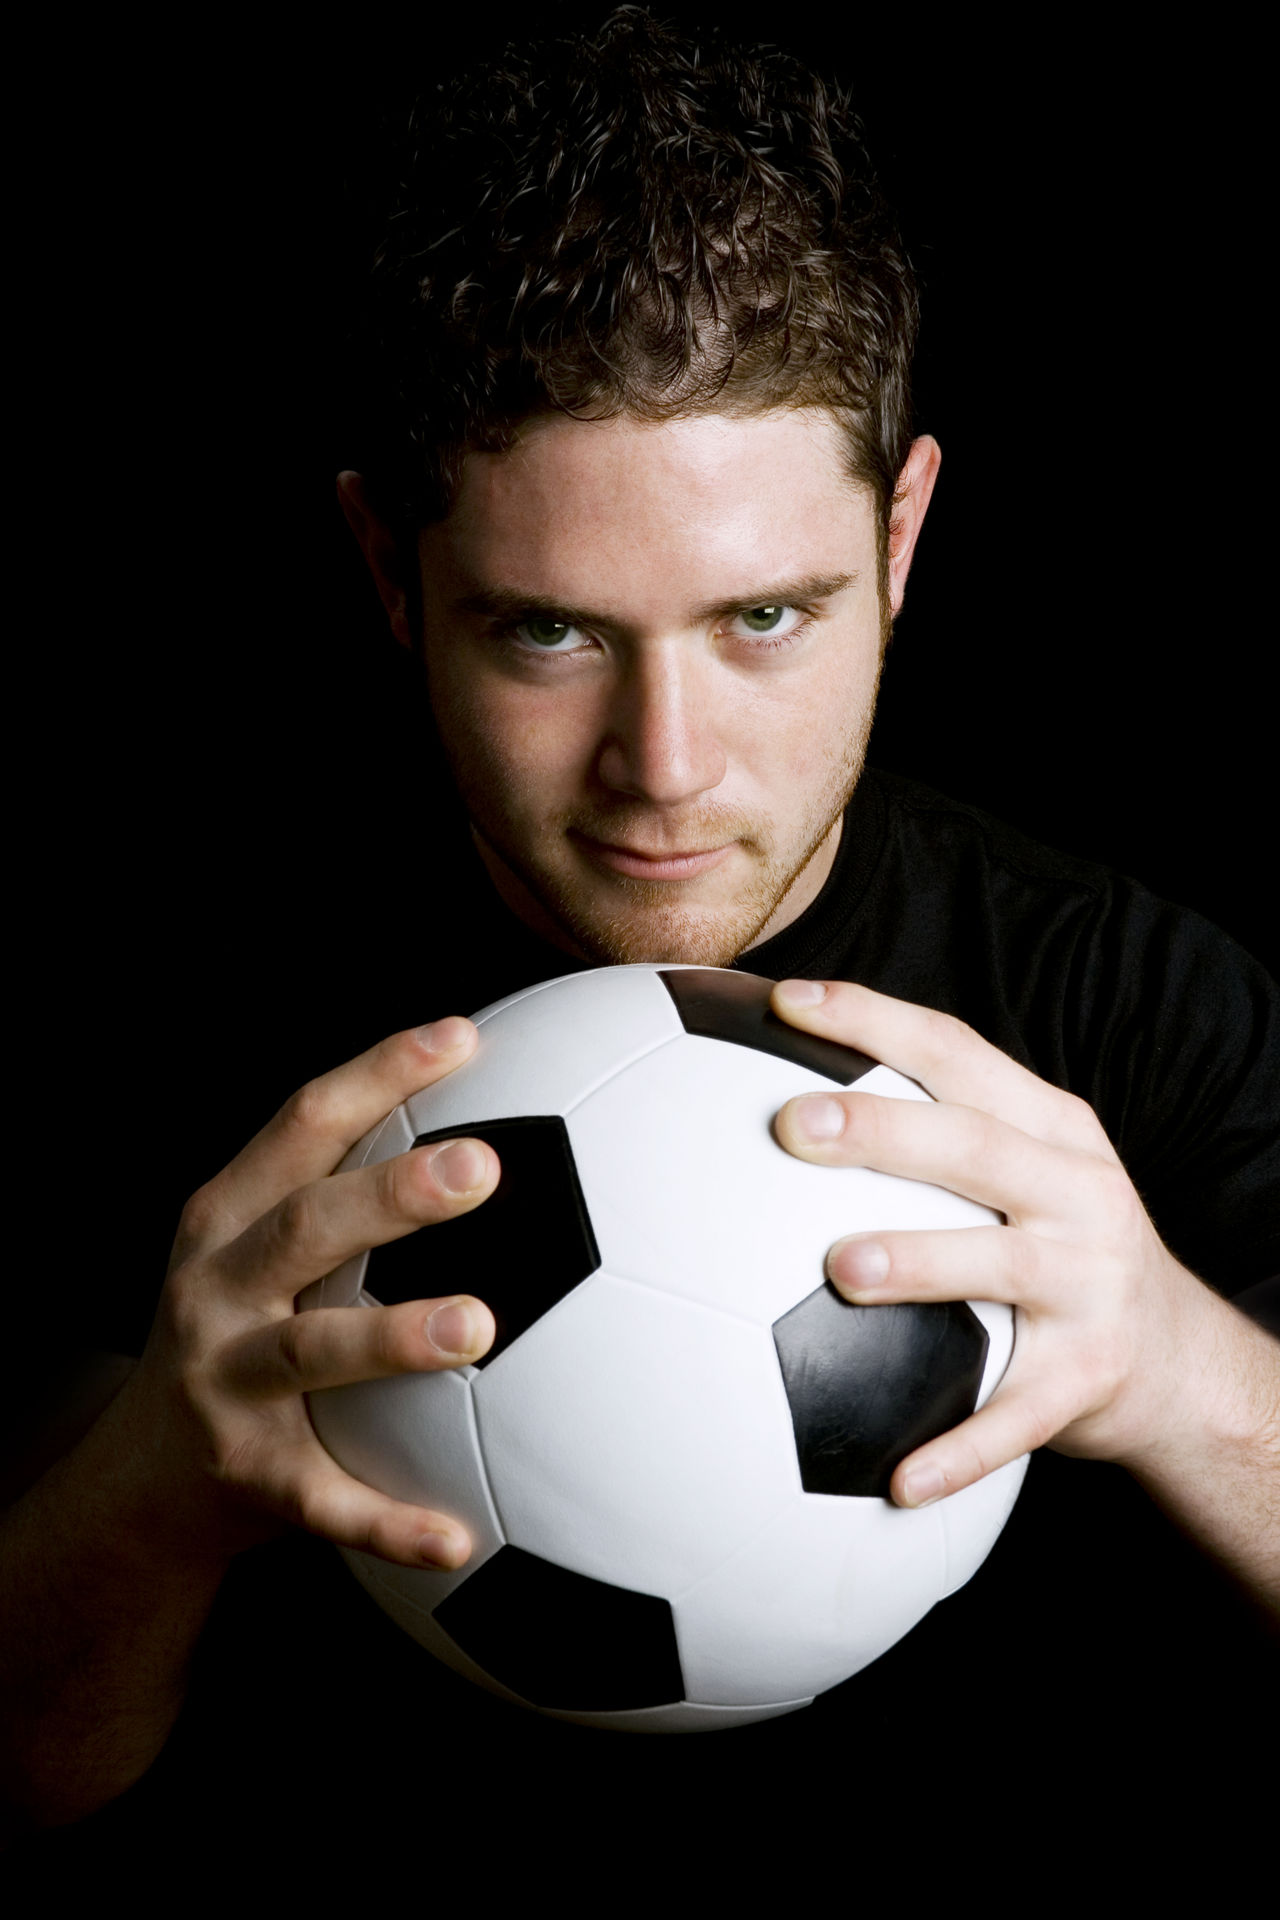 Soccer player Athlete Ball Black Background Caucasian Competition Football Holding Looking At Camera Male Man One Man Only One Person One Young Man Only Only Men People Portrait Soccer Sport Sportsman Studio Shot Vertical Young Adult